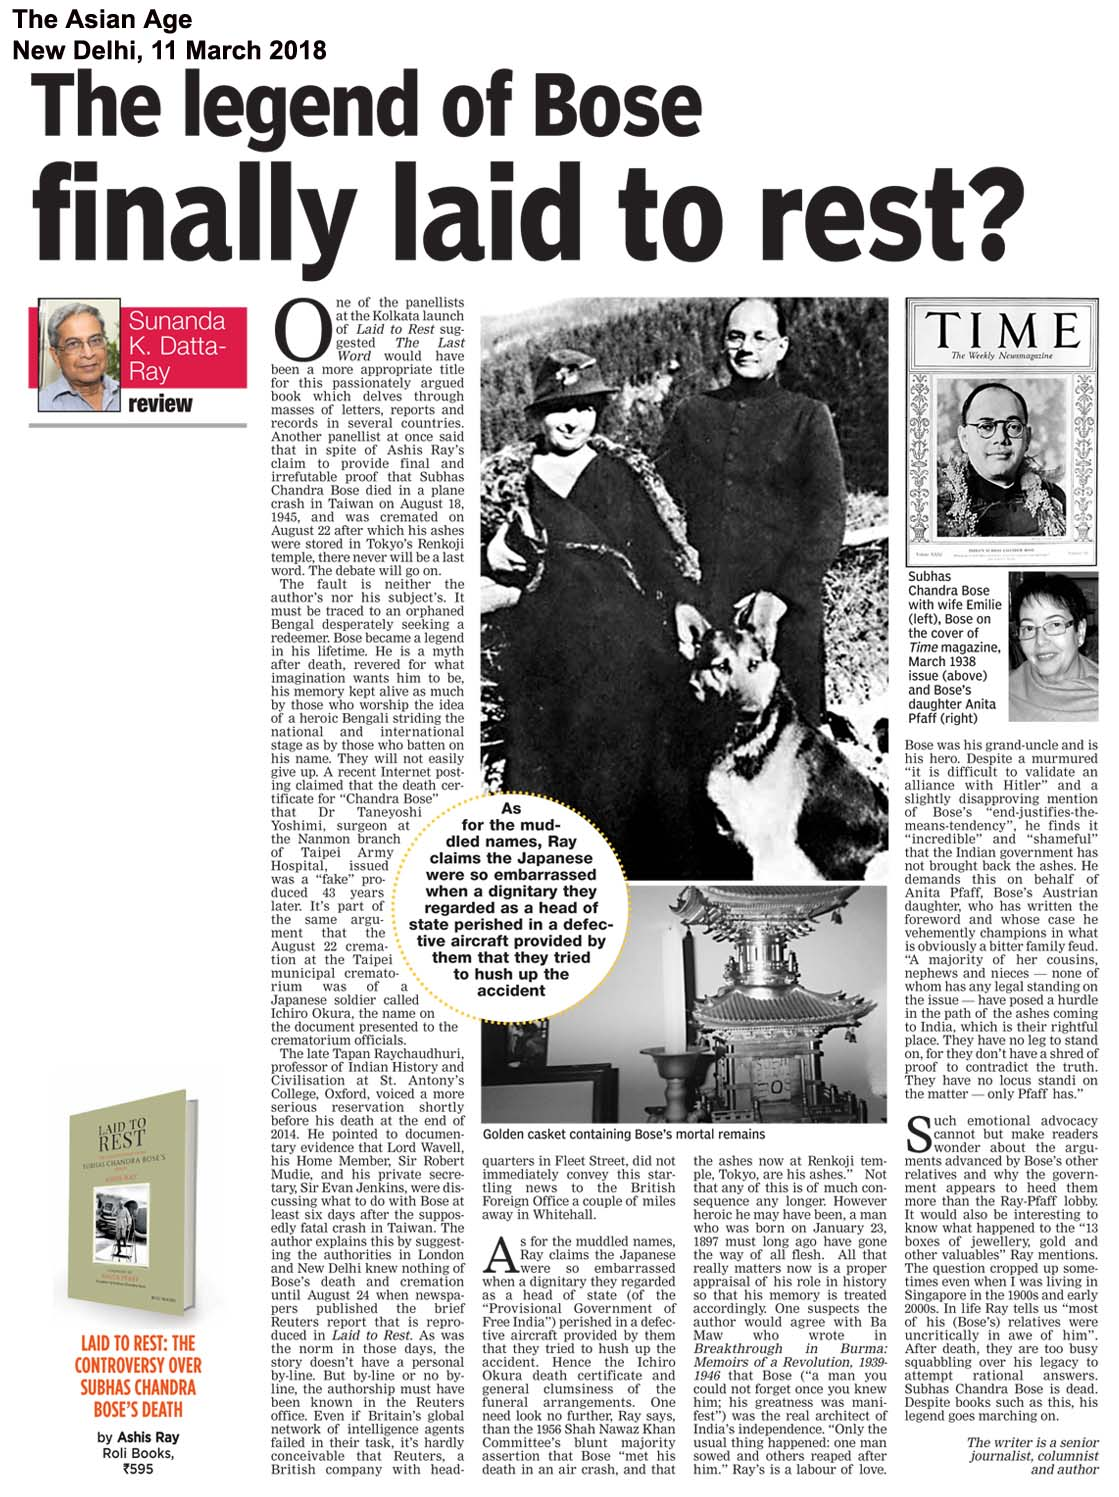 Laid to Rest<br><span>The Asian Age, New Delhi</span>